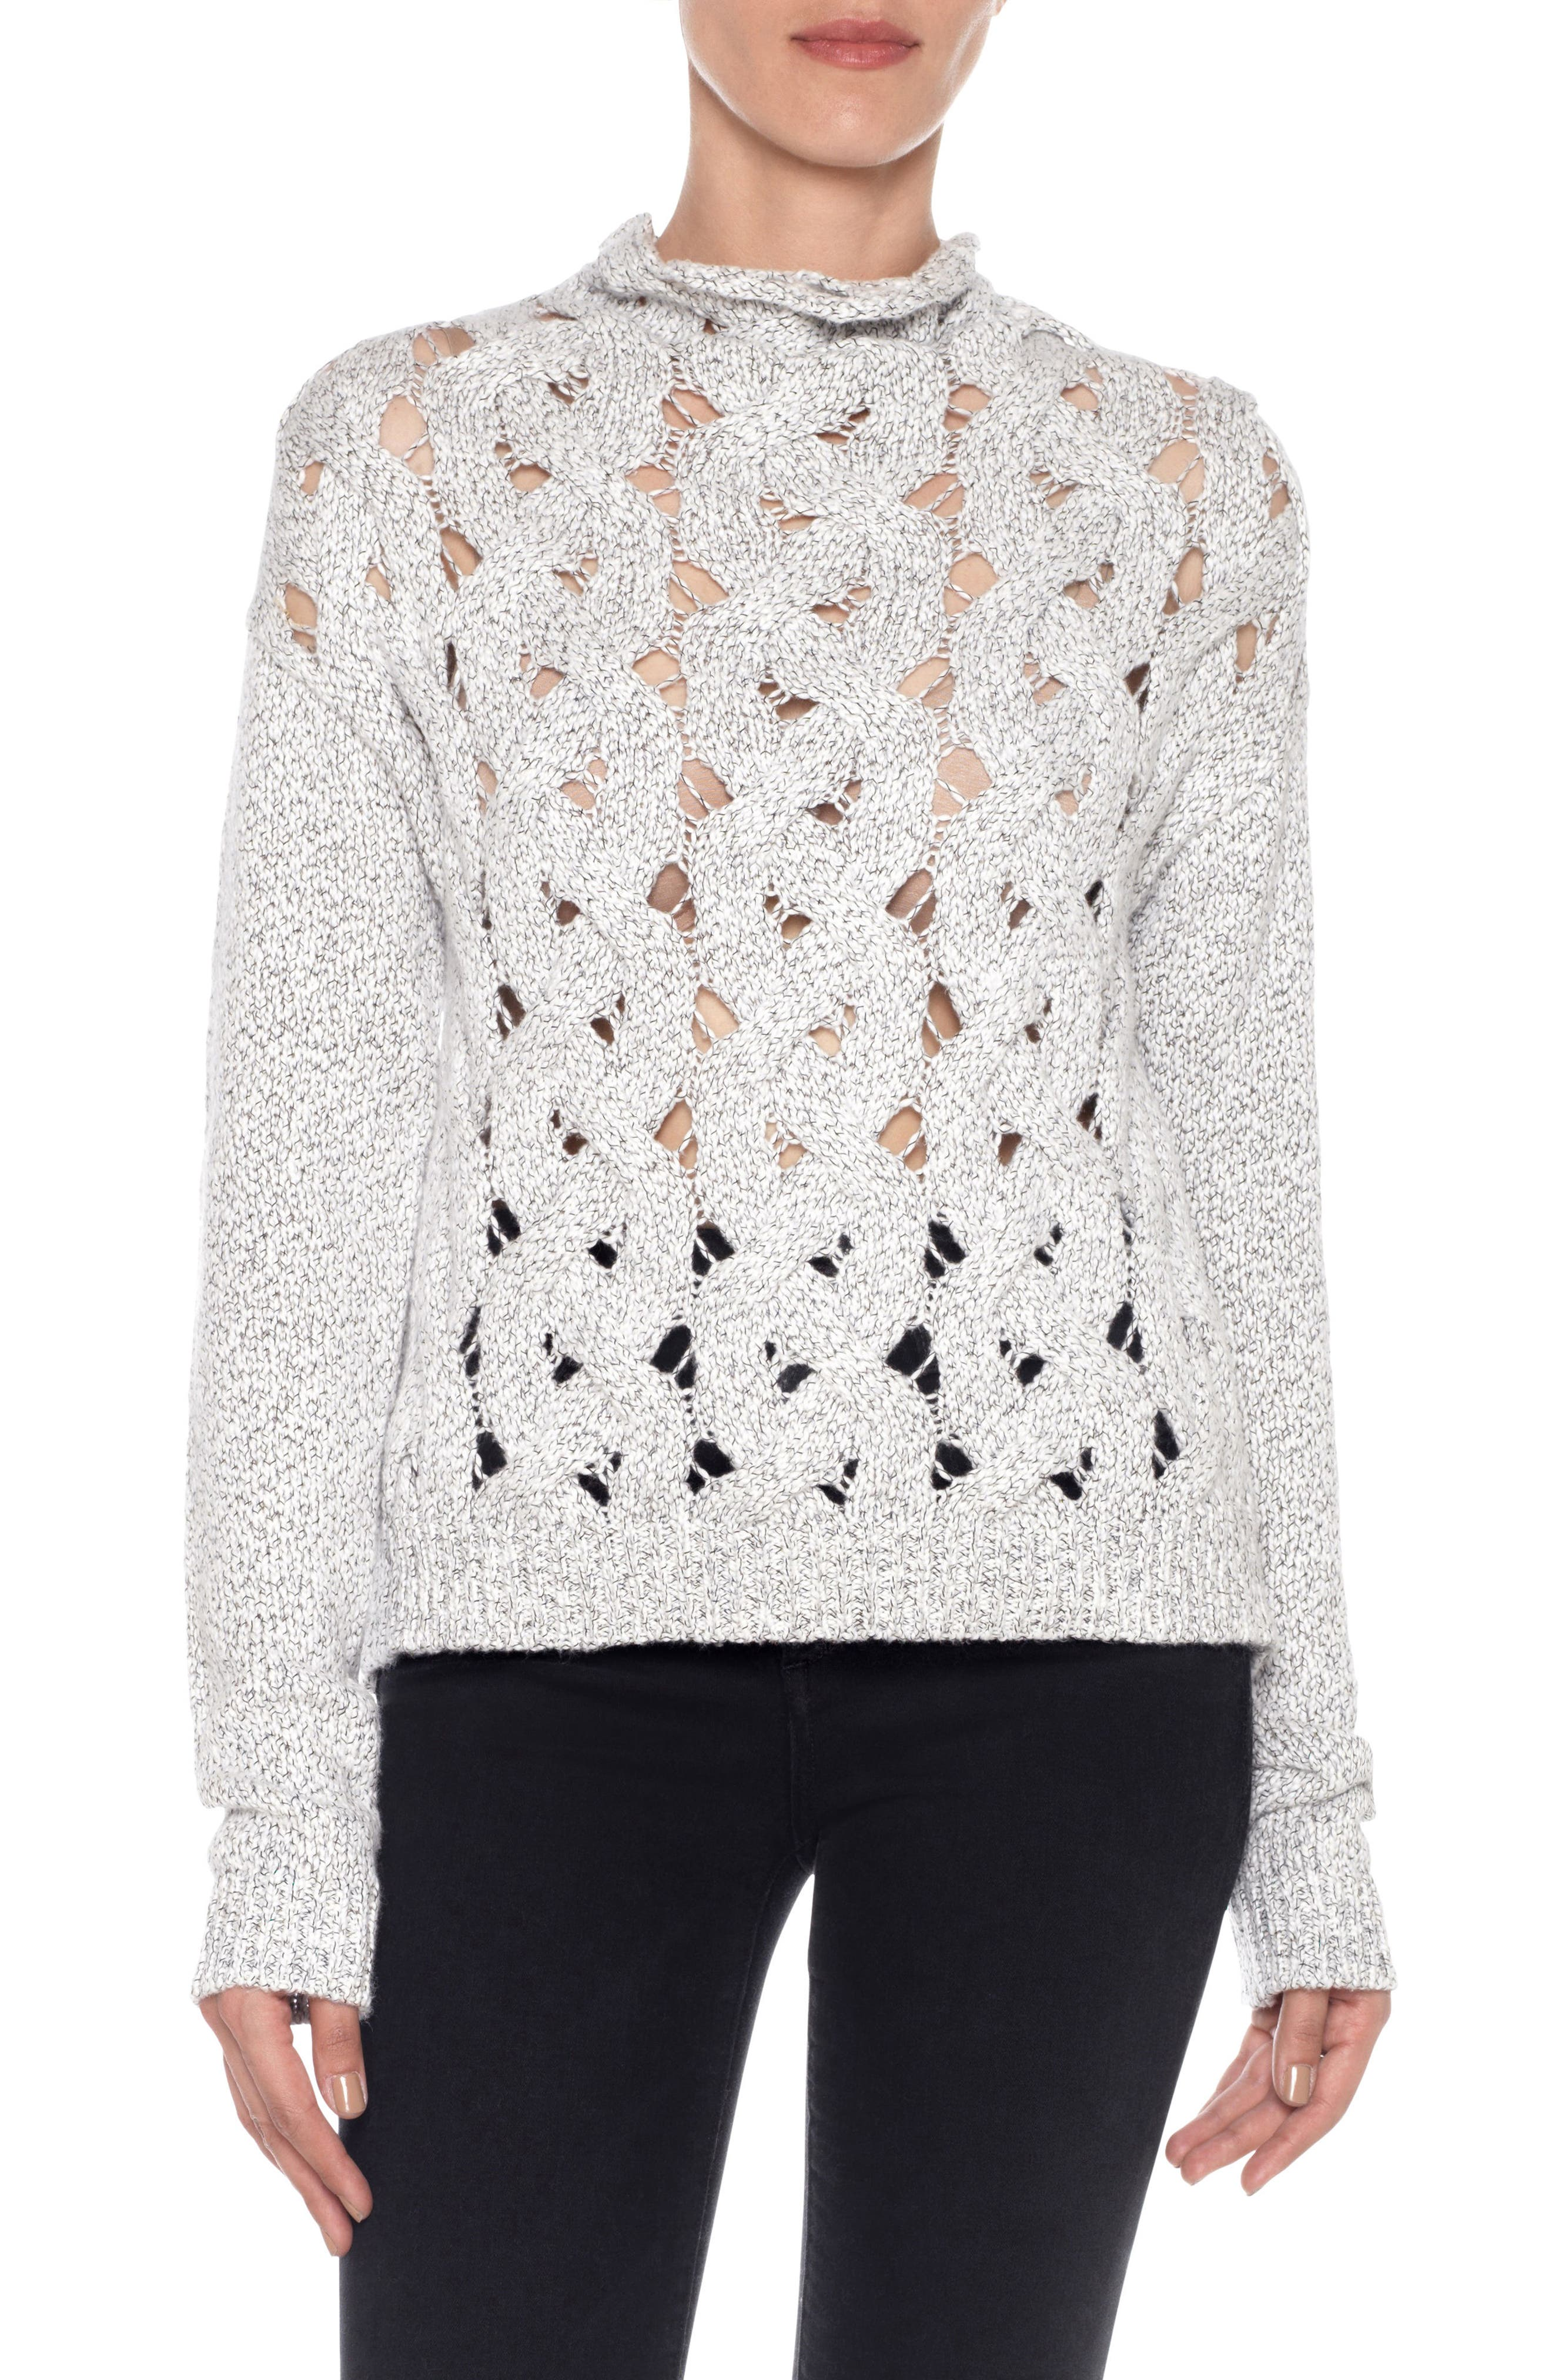 Aubree Roll Neck Sweater,                             Main thumbnail 1, color,                             White/ Black